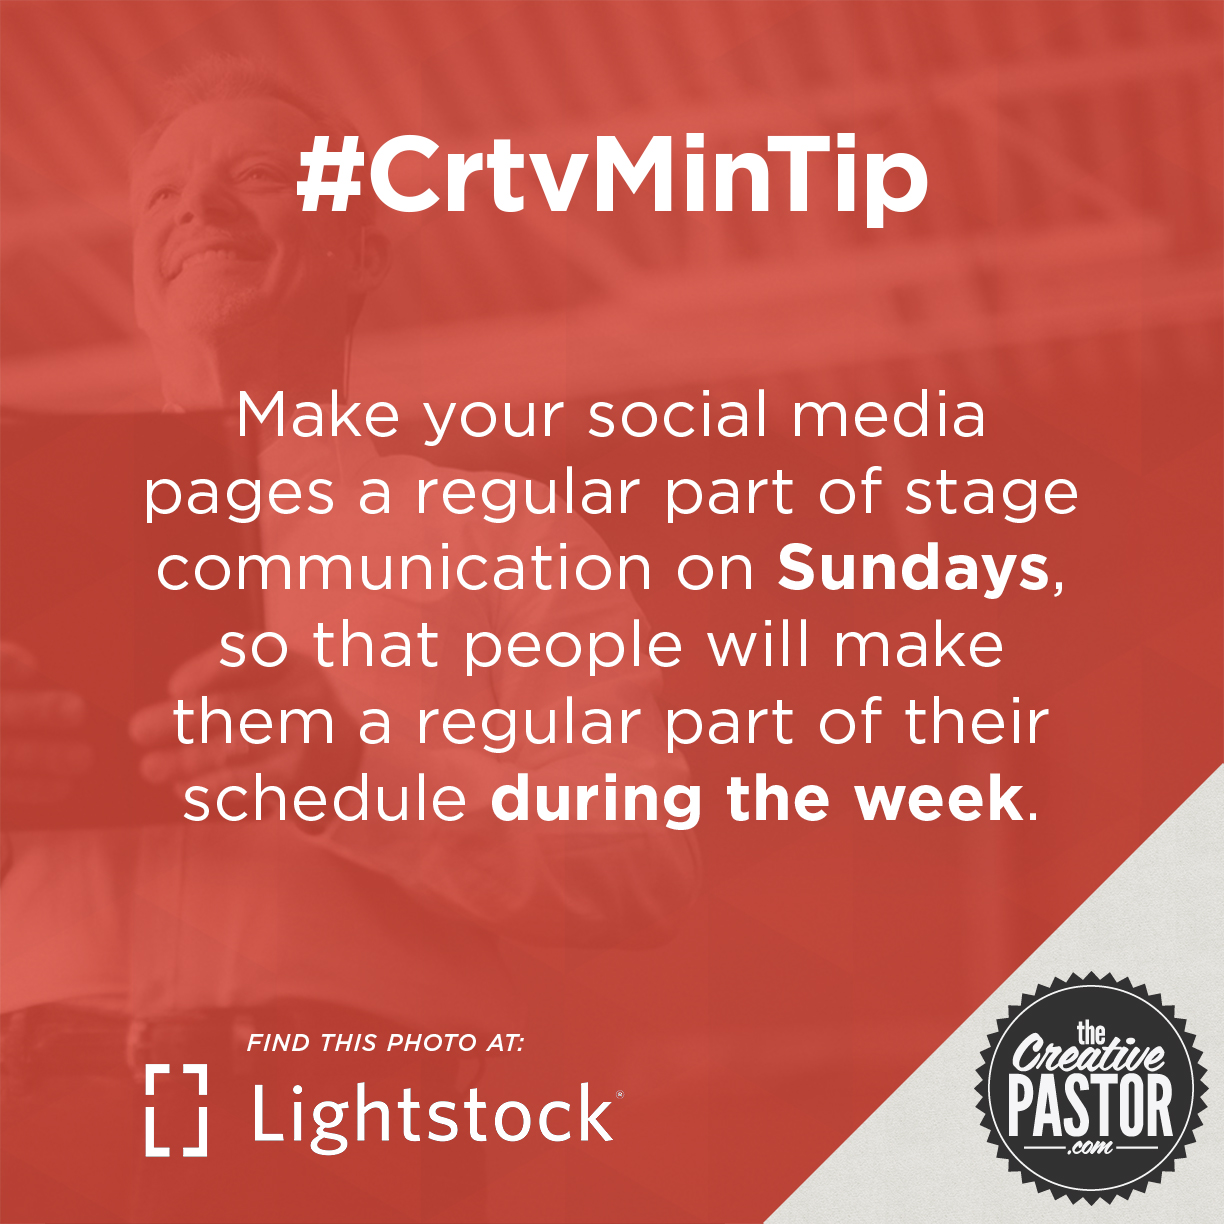 Make your social media pages a regular part of stage communication on Sundays, so that people will make them a regular part of their schedule during the week.